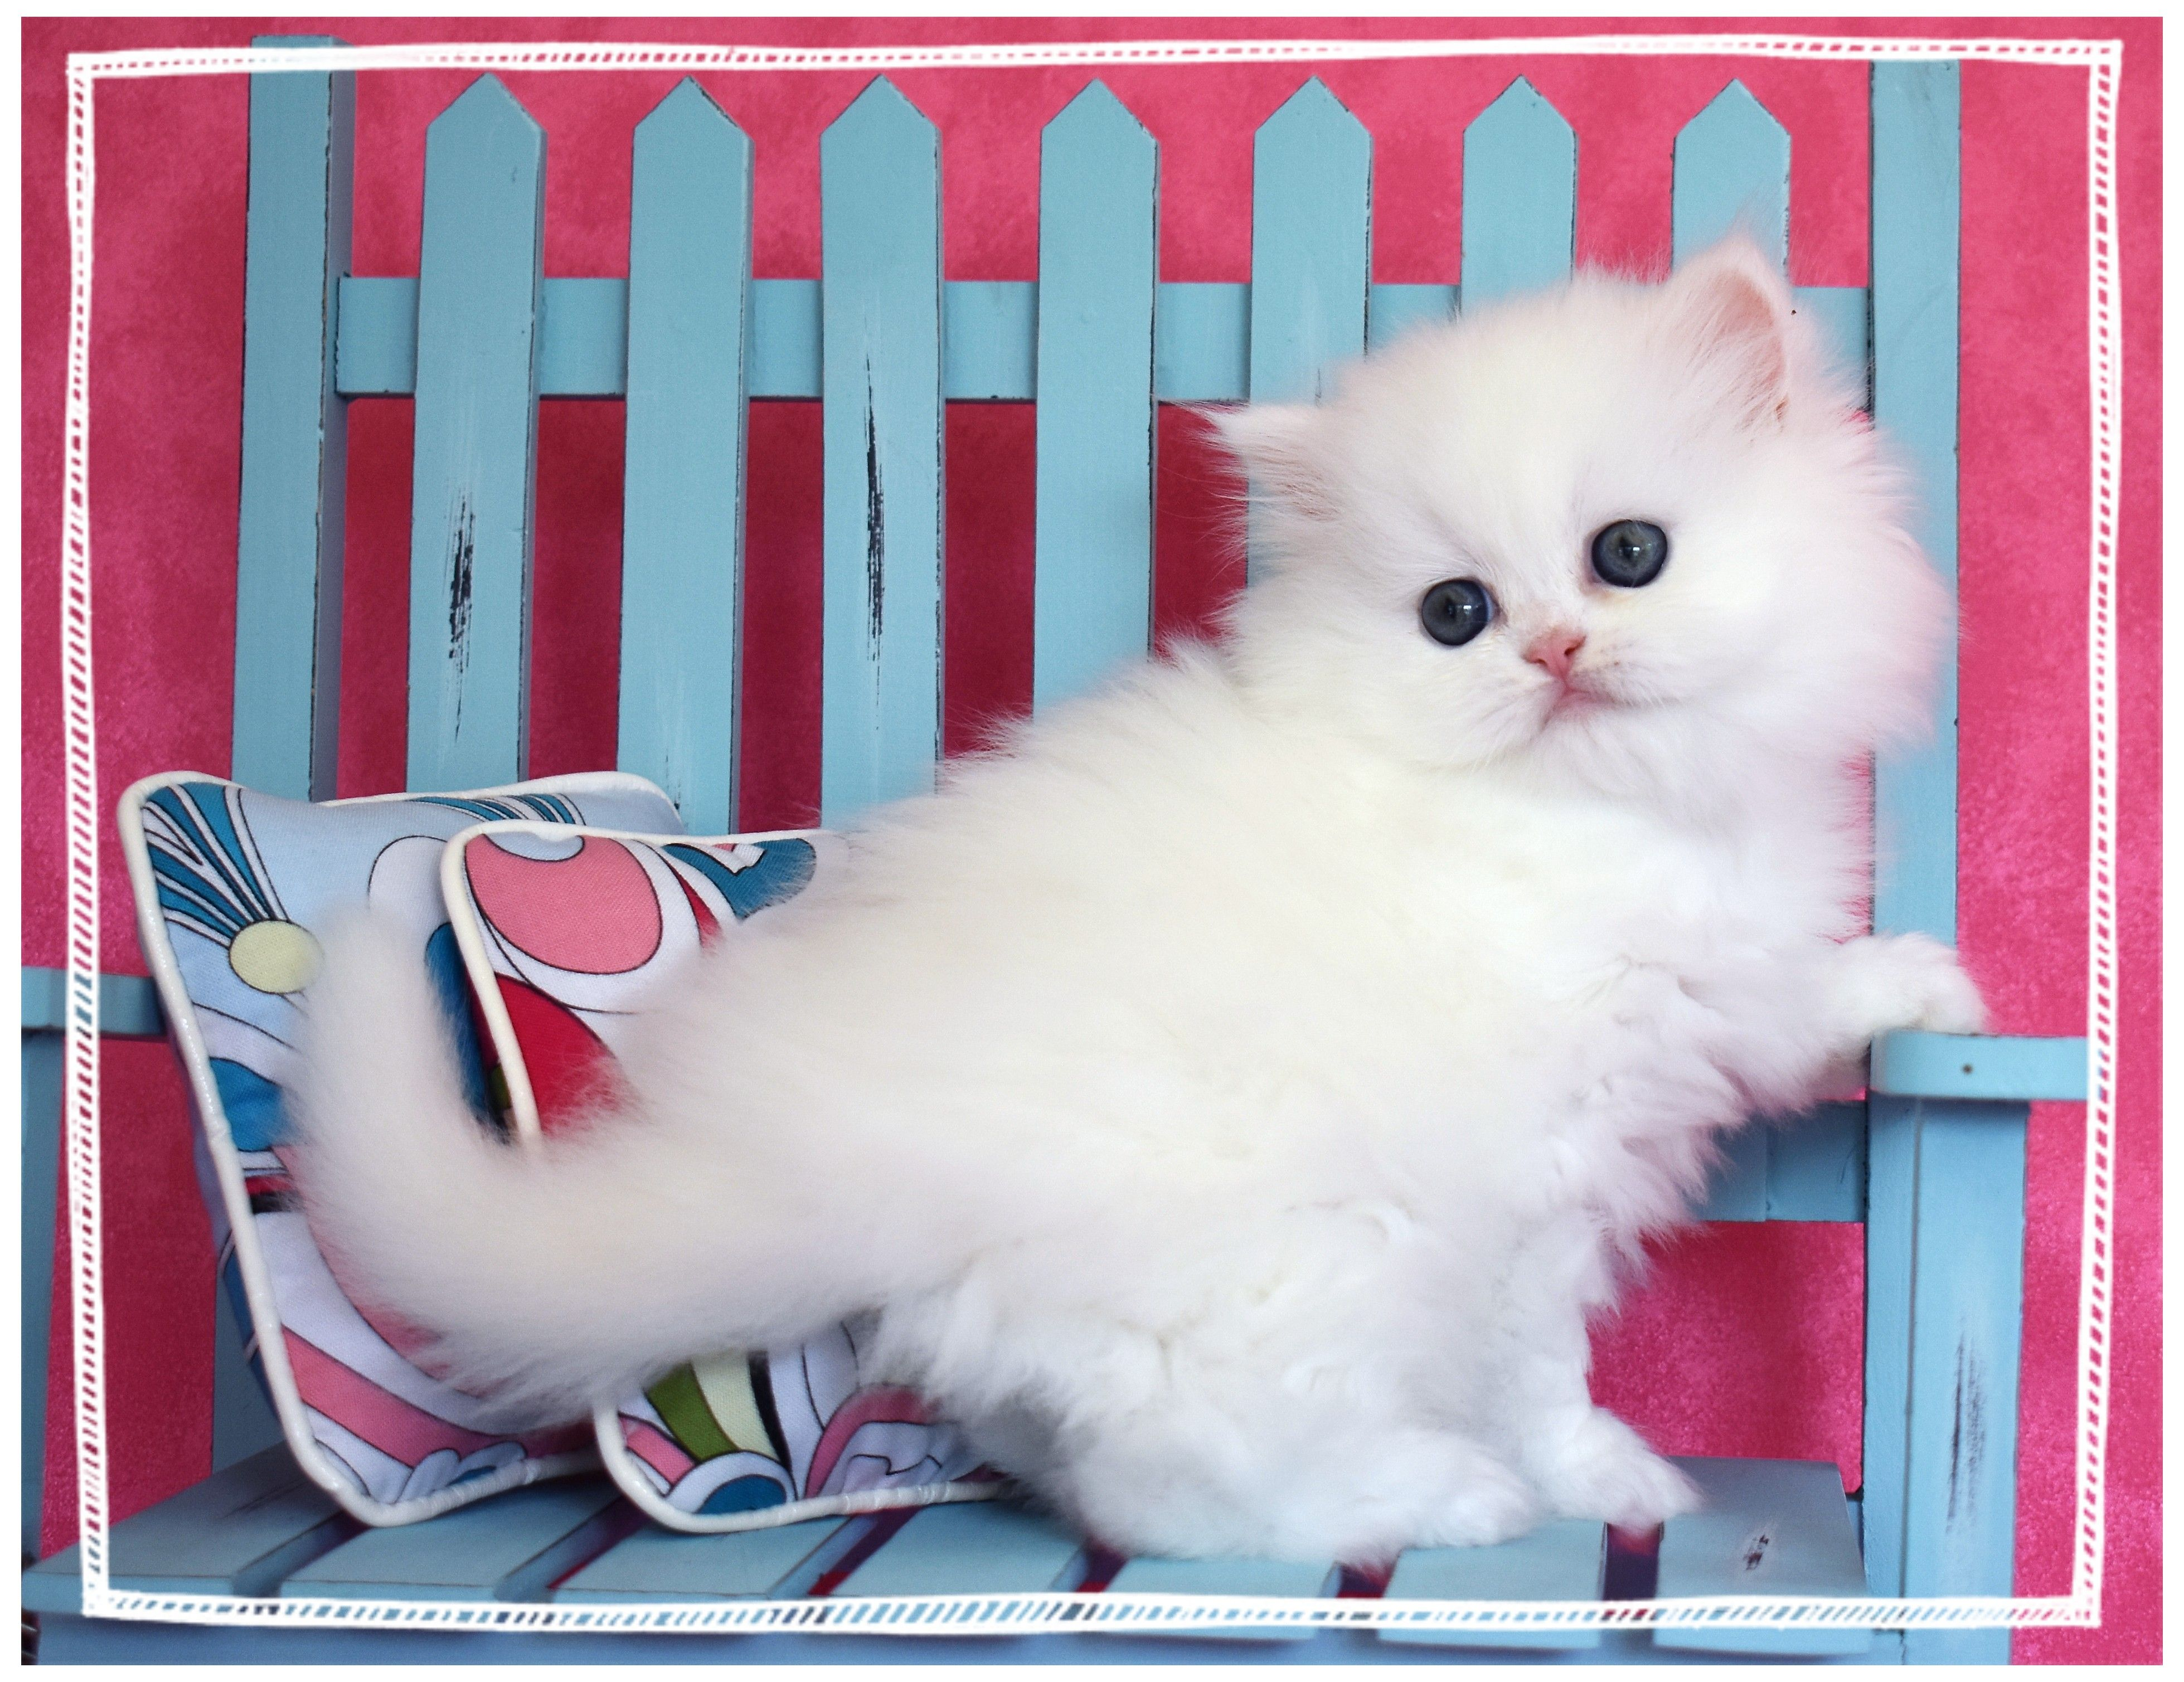 White Teacup Persian Kittens For Sale Stop By The Website Today To Choose One For Your Family Persian Kittens Kitten For Sale White Fluffy Kittens